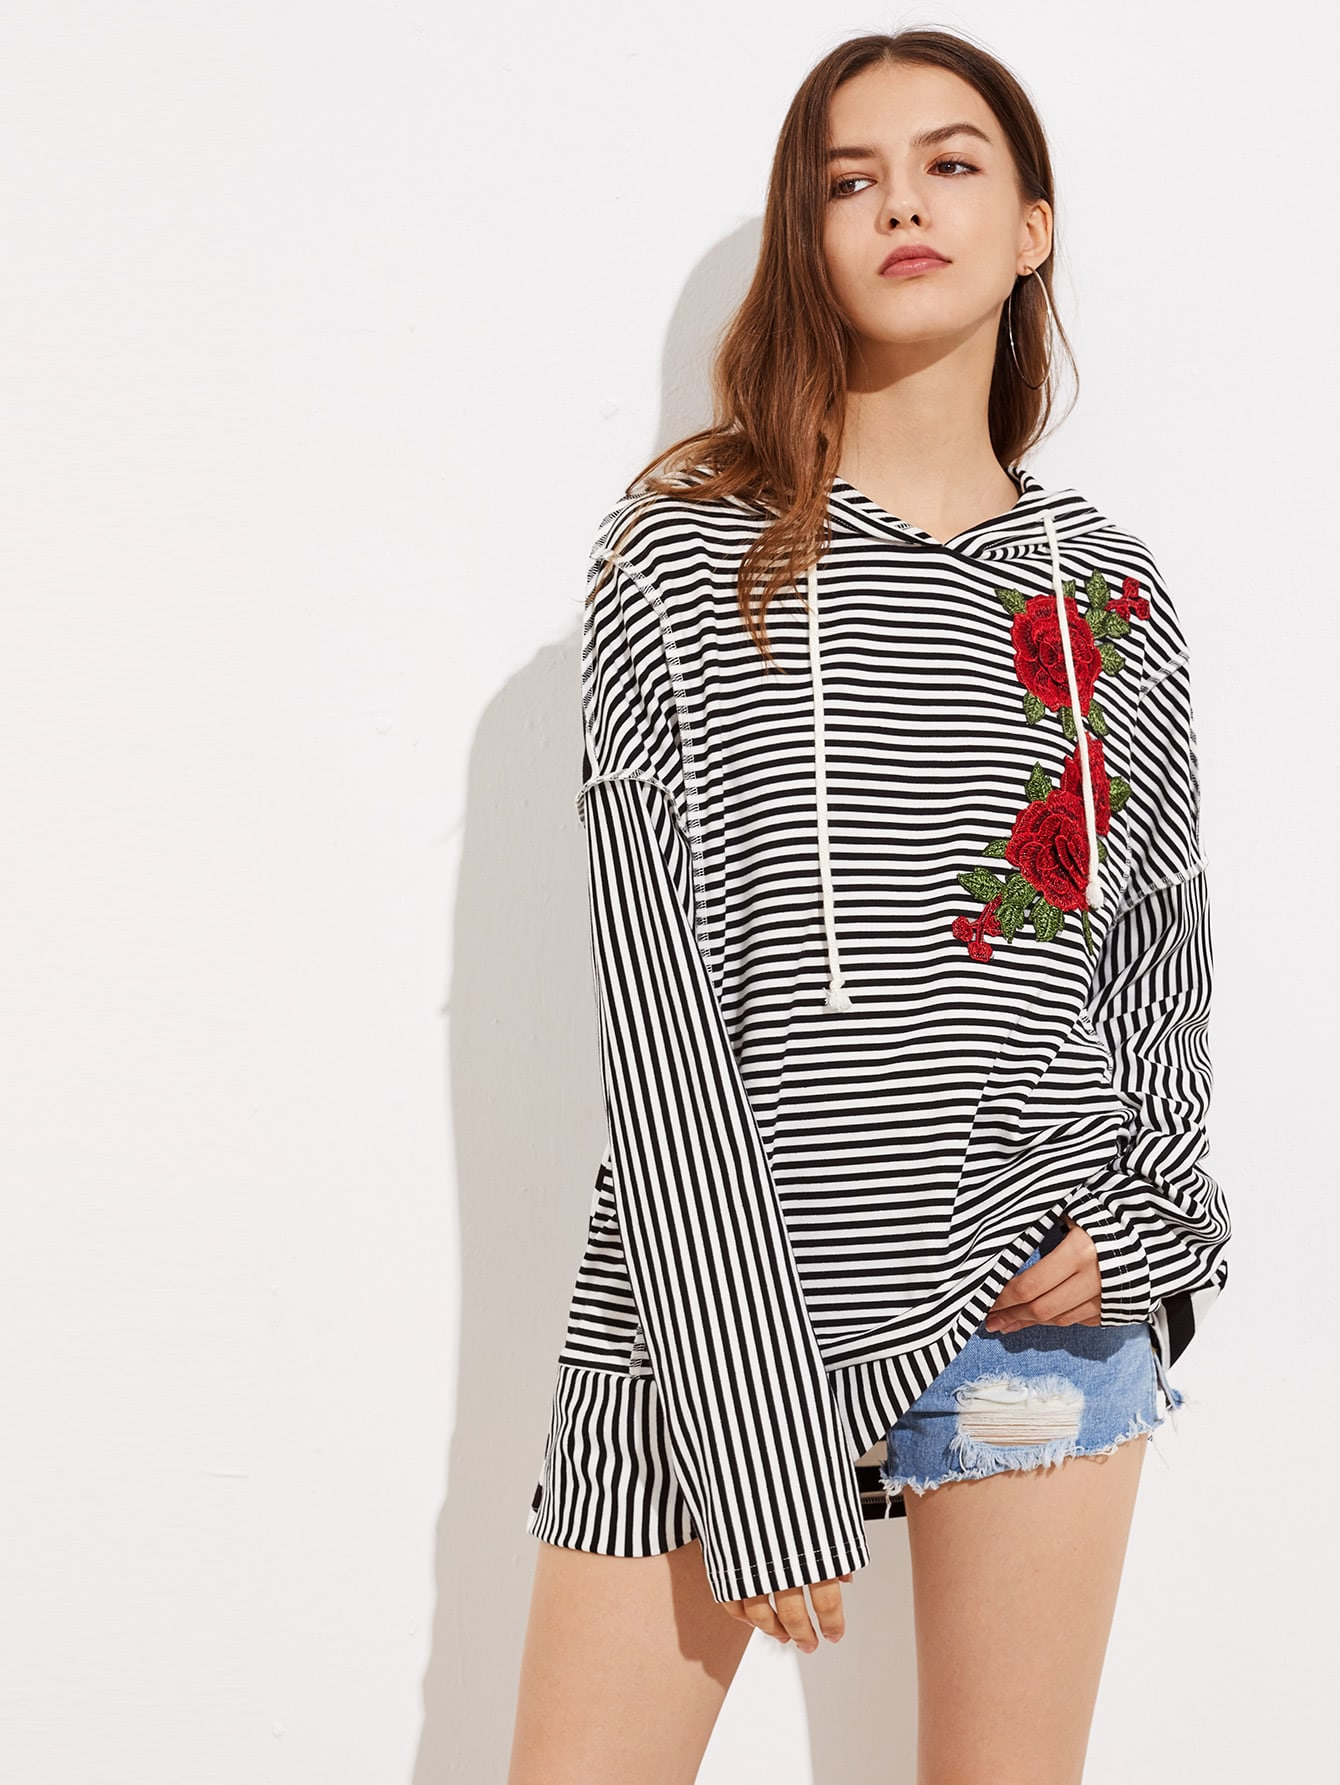 Mixed Stripe Embroidery Applique Hoodie sweatshirt170713702